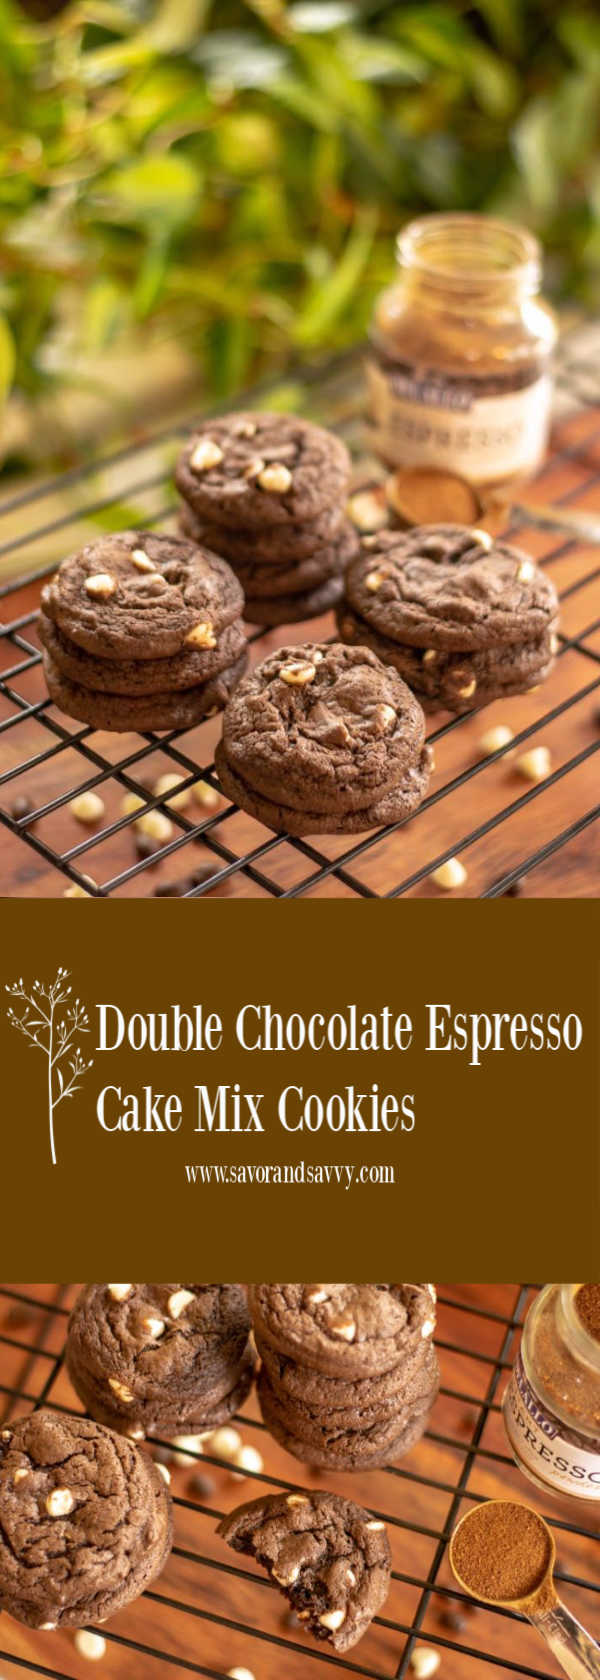 My fave cookie! Double Chocolate Espresso Cake mix Cookies are Delish! #cakemix #cookies #CakeMixCookies #Christmas #Holiday